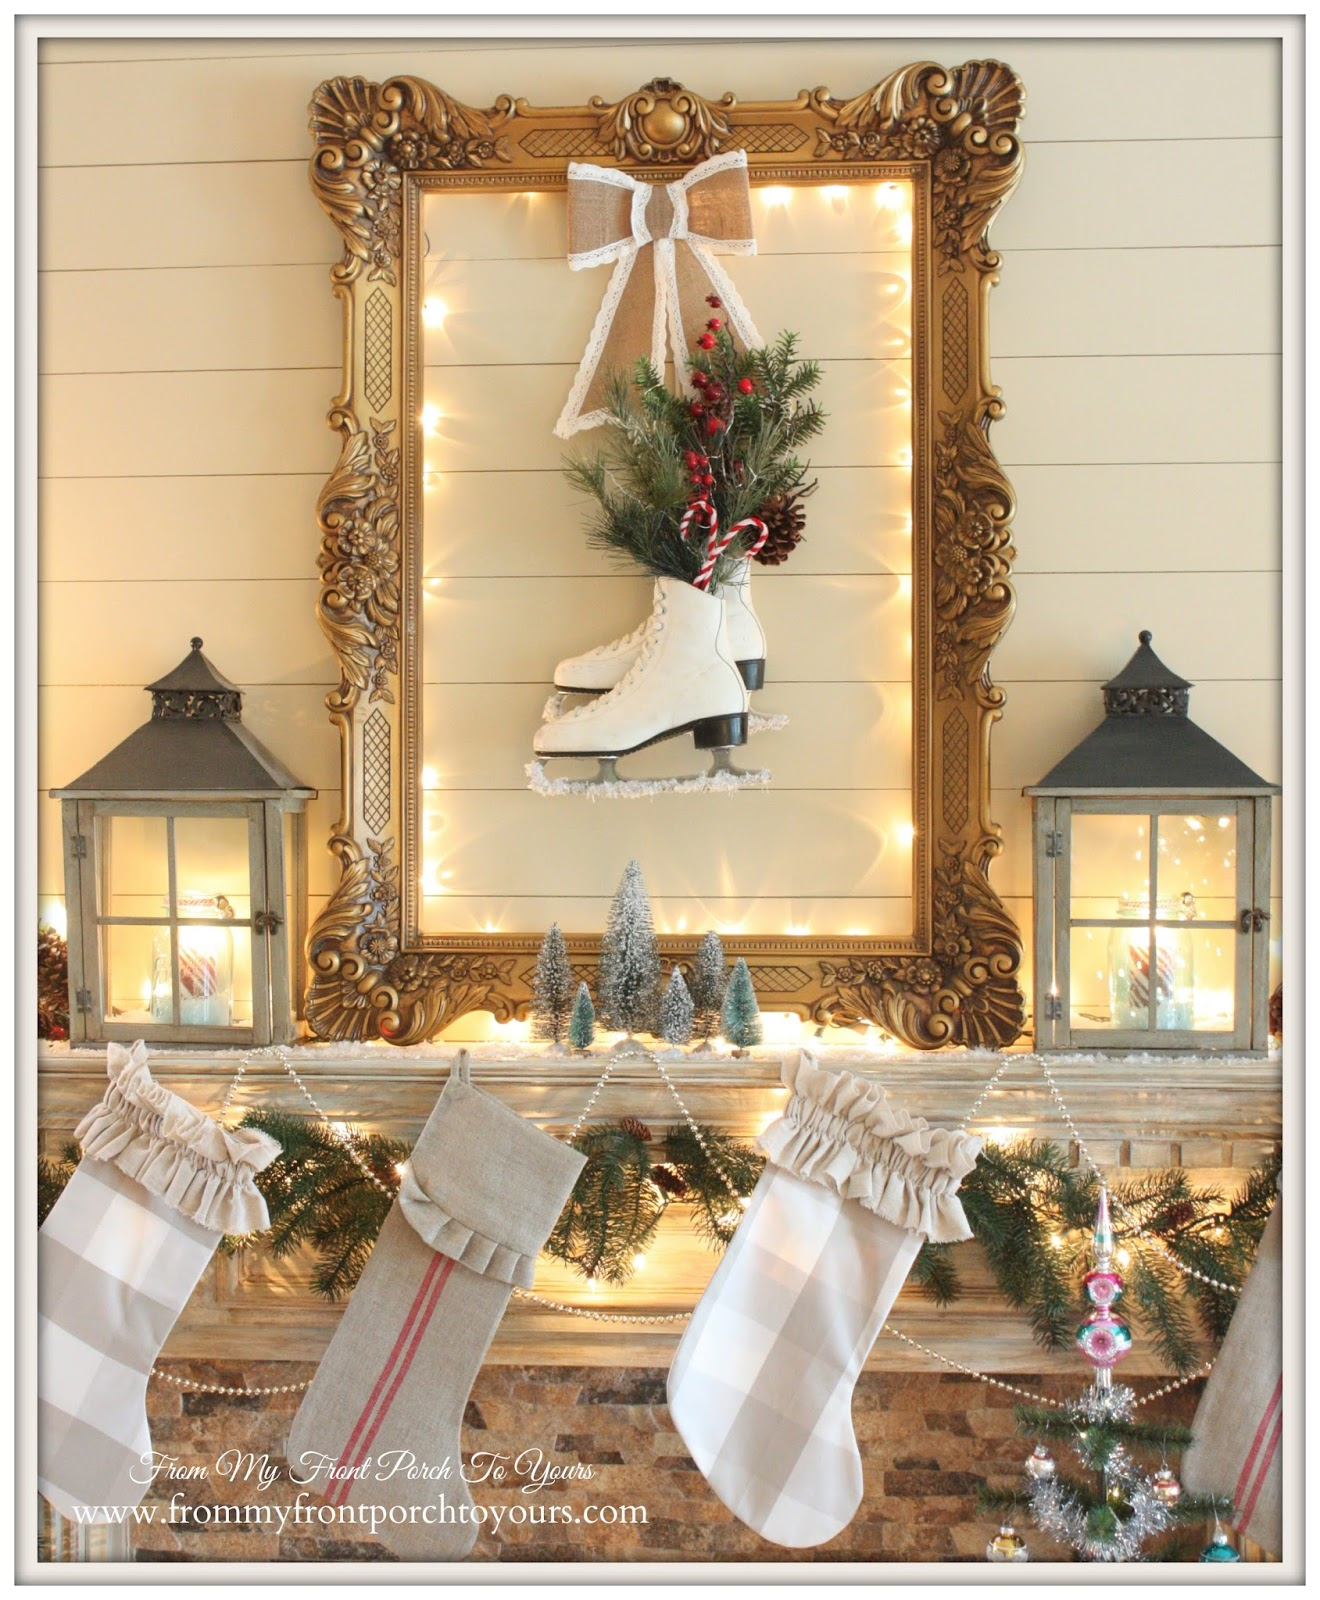 From My Front Porch To Yours: Christmas 2014 Home Tour